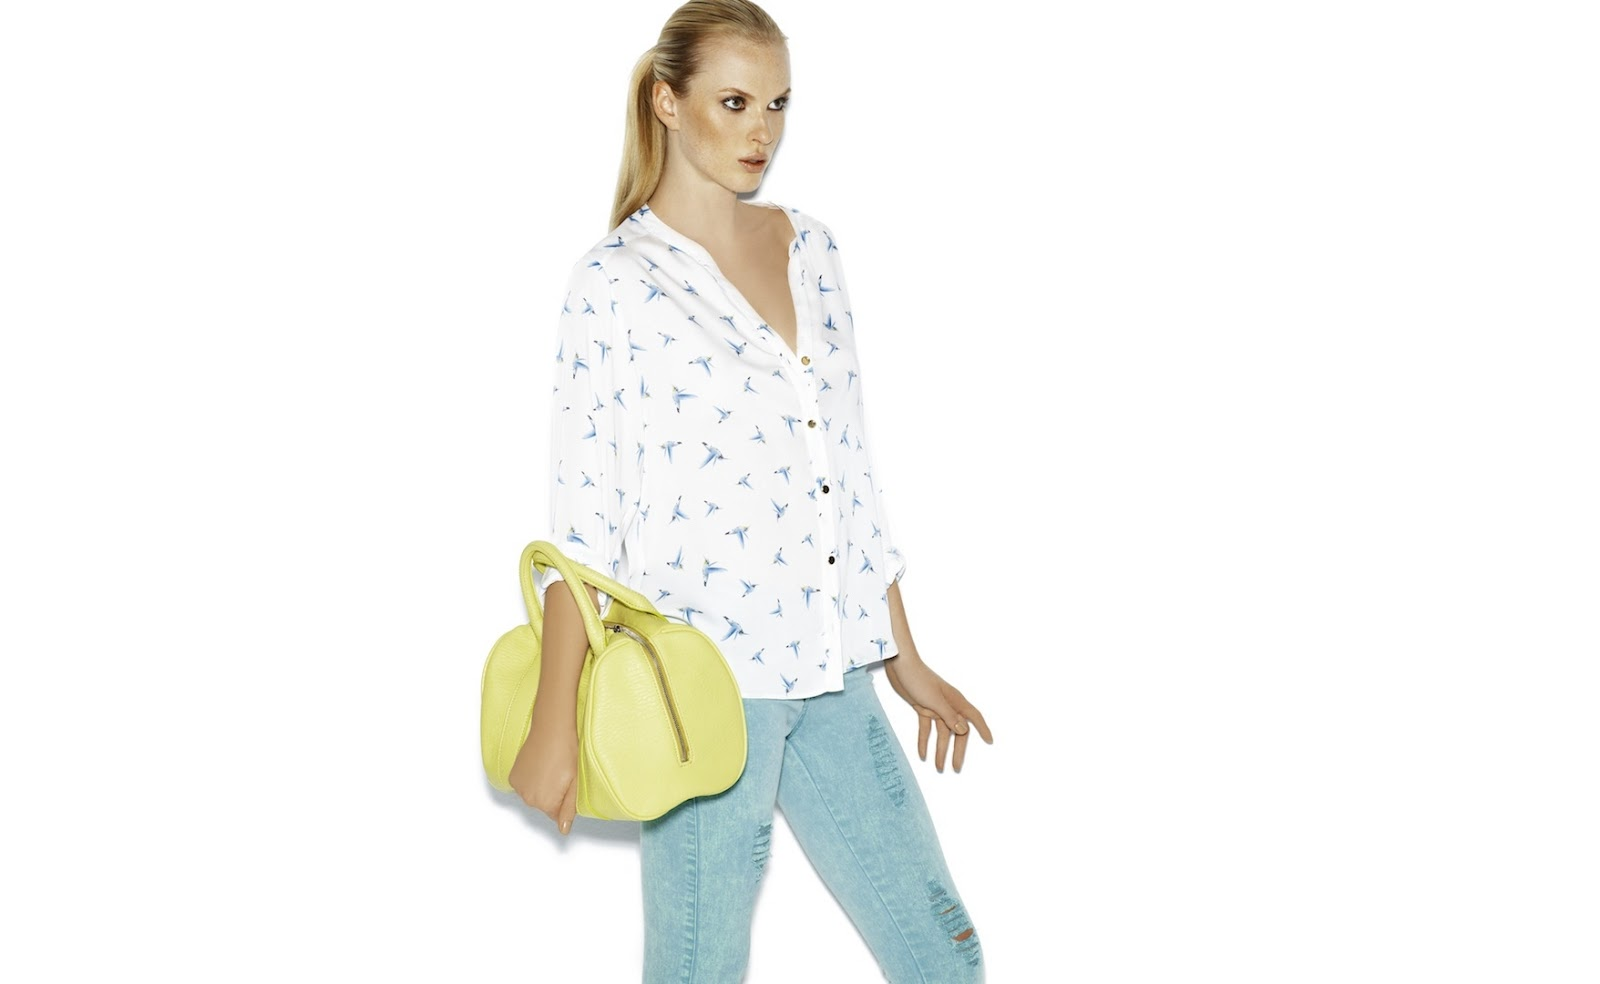 Suite Blanco Spring Bloom 2013 Campaign picture